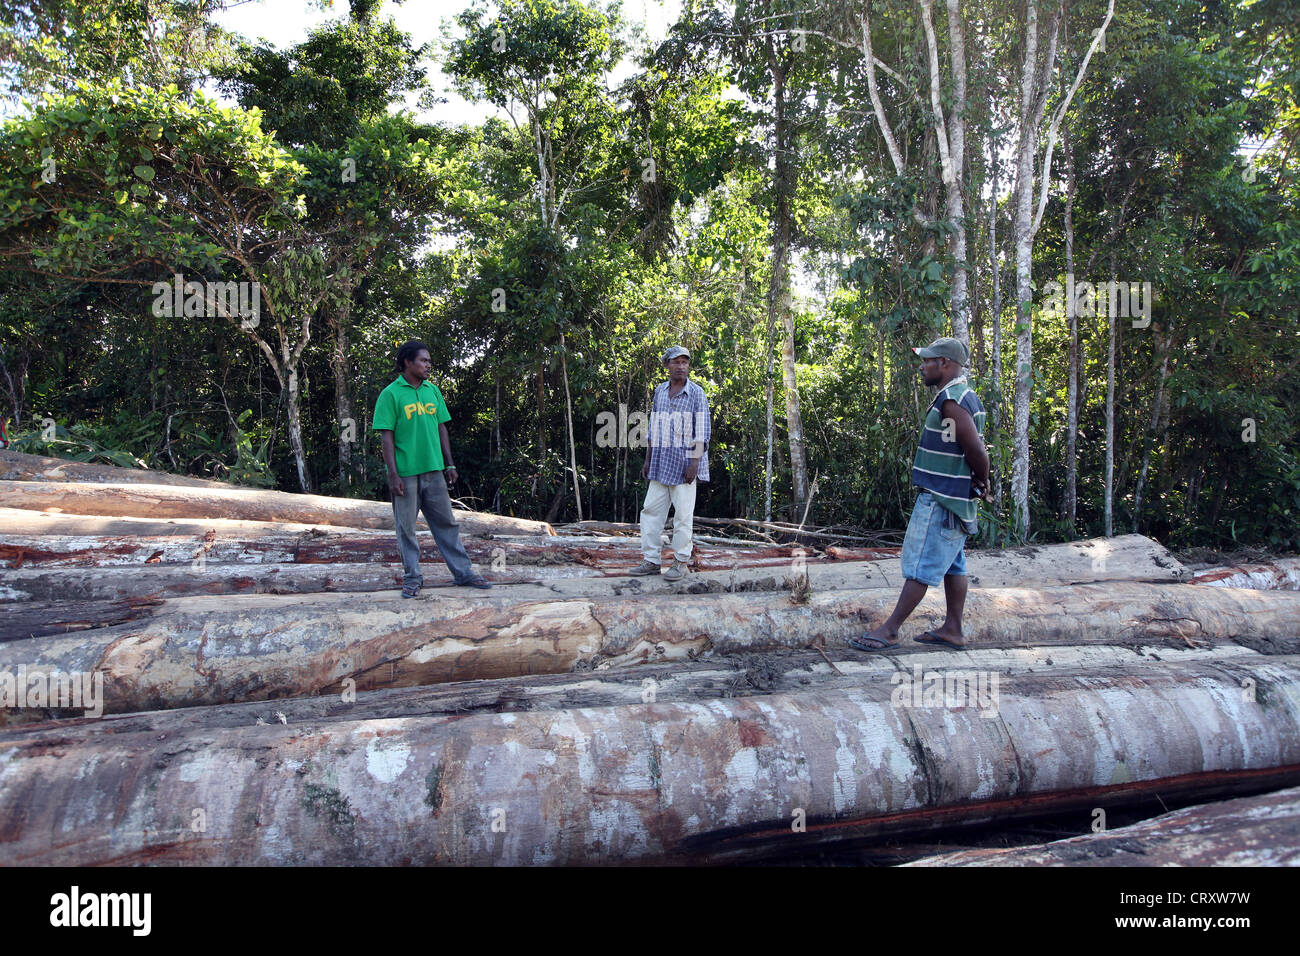 Lumberjacks in a clearing of a log area, province of Madang, Papua Neuguinea Stock Photo